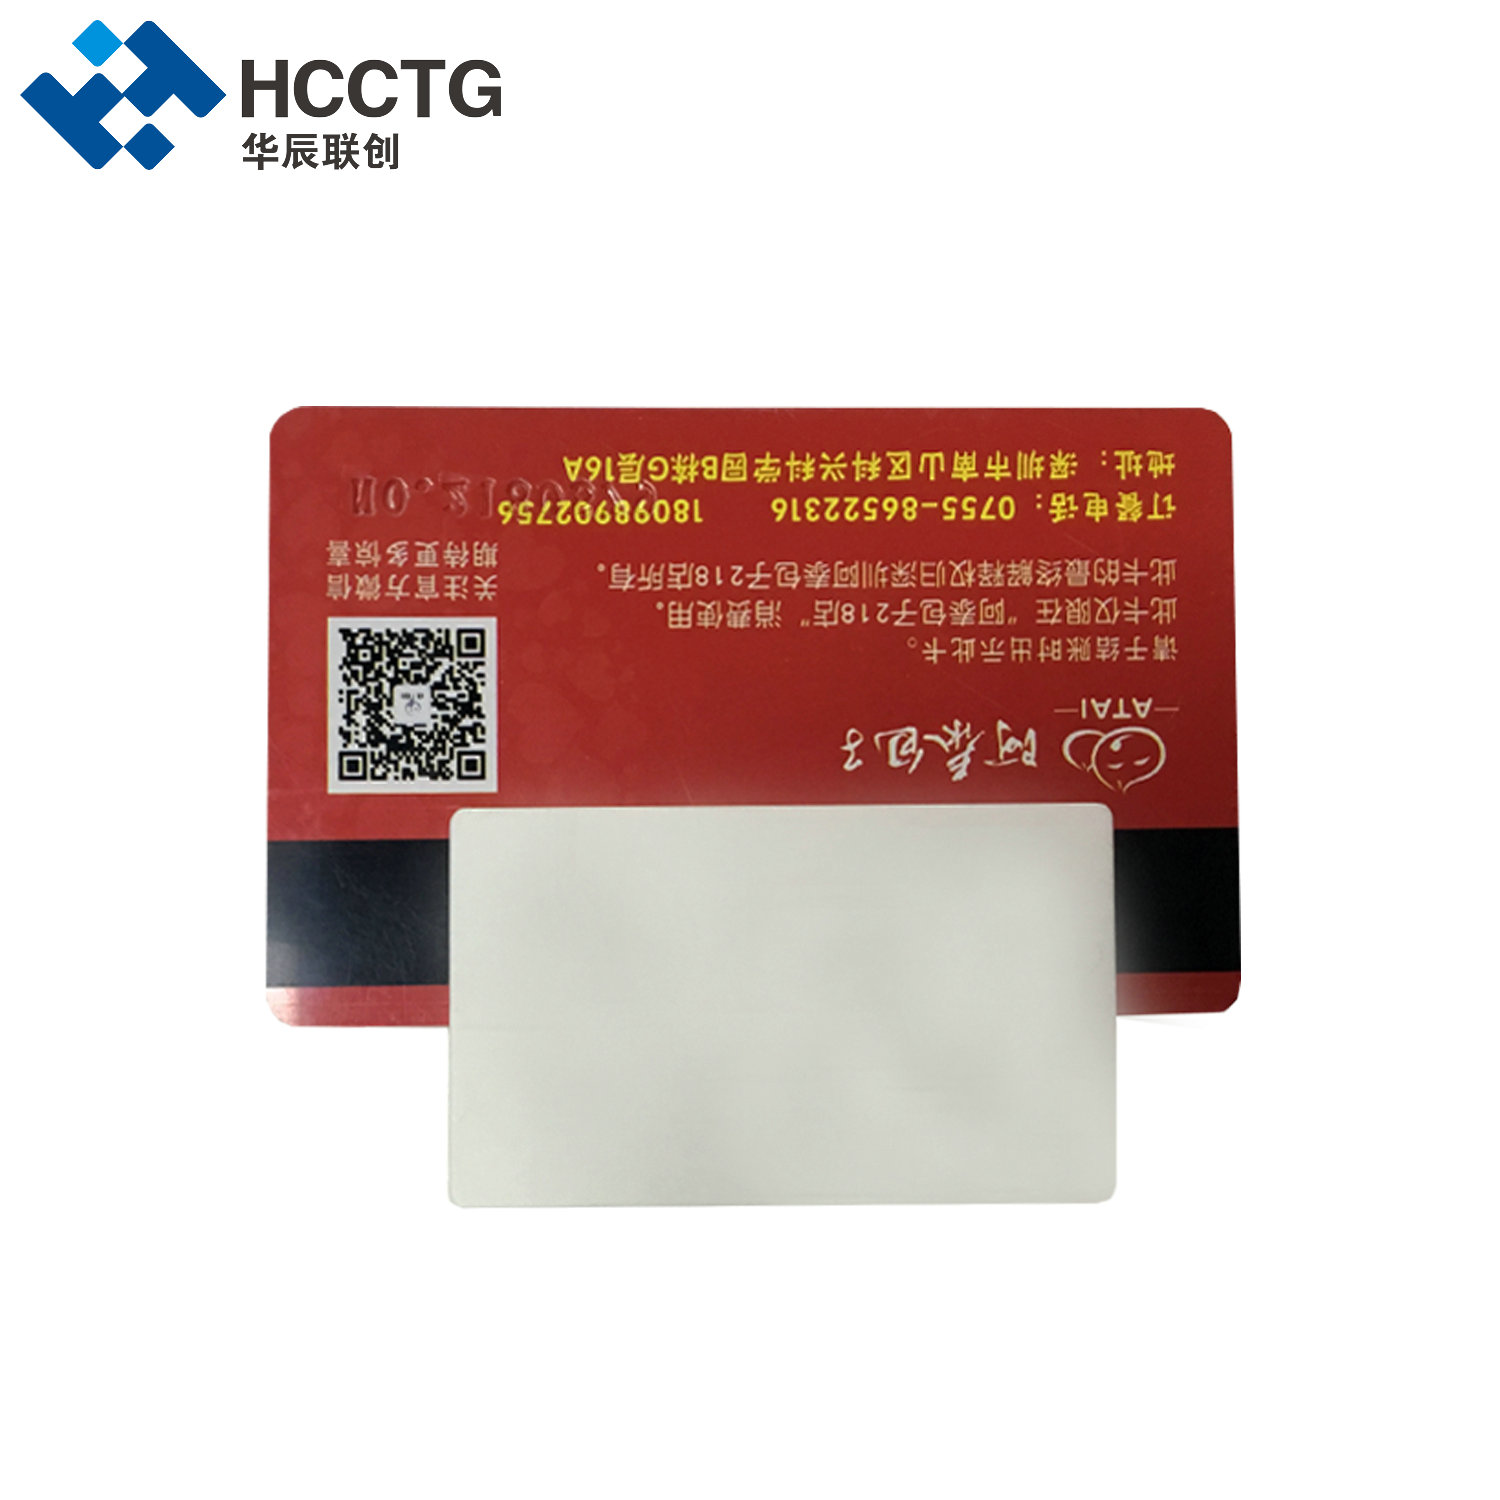 MPR100 Mobile Credit Card Reader Bluetooth Smart Card Reader IC+Magnetic,Wireless Card Skimmer For Android And IOS Phone